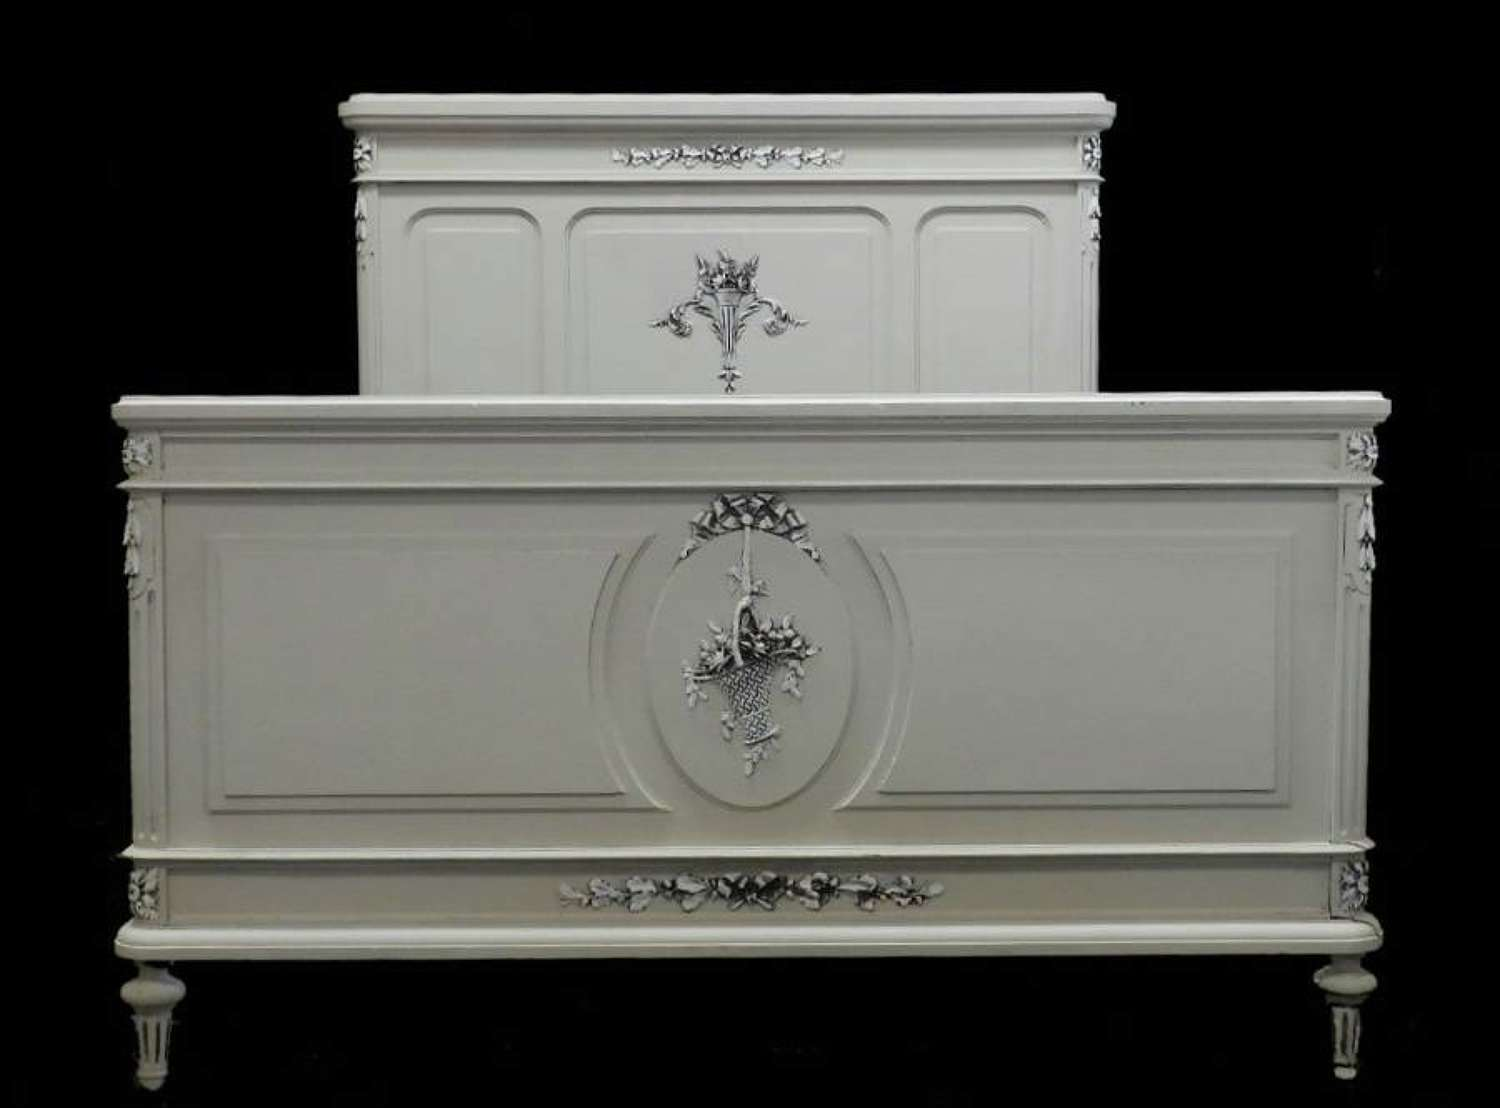 C19 Louis XVI French Antique Kingsize Bed painted